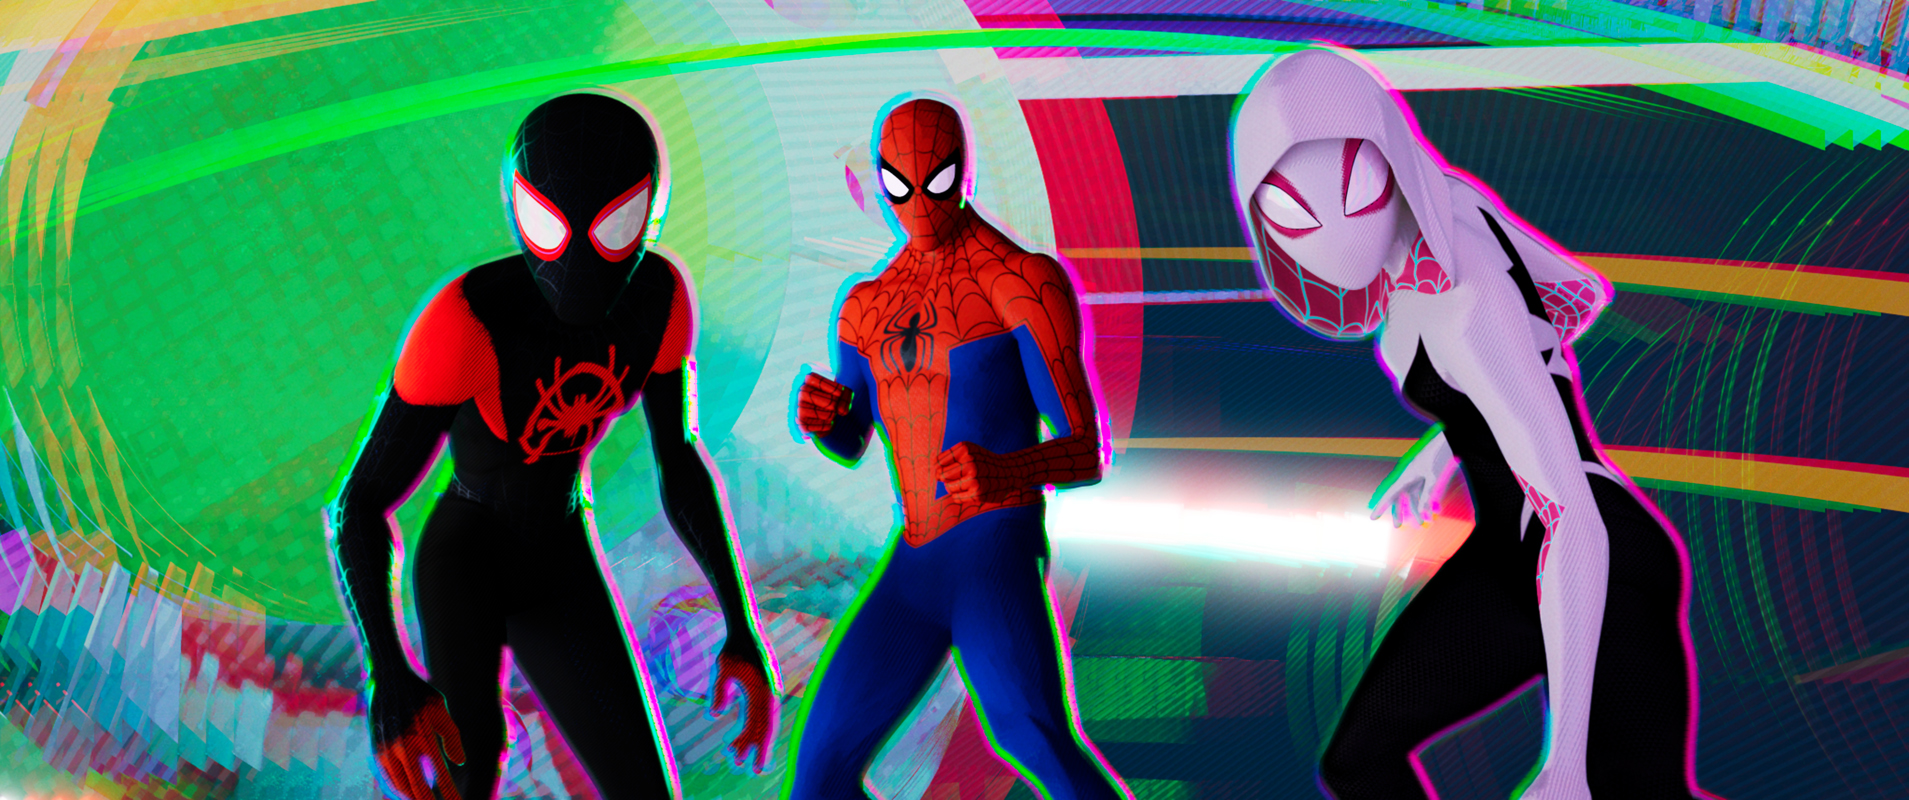 ART OF THE CUT on editing Spider-Man: Into the Spider-Verse 15